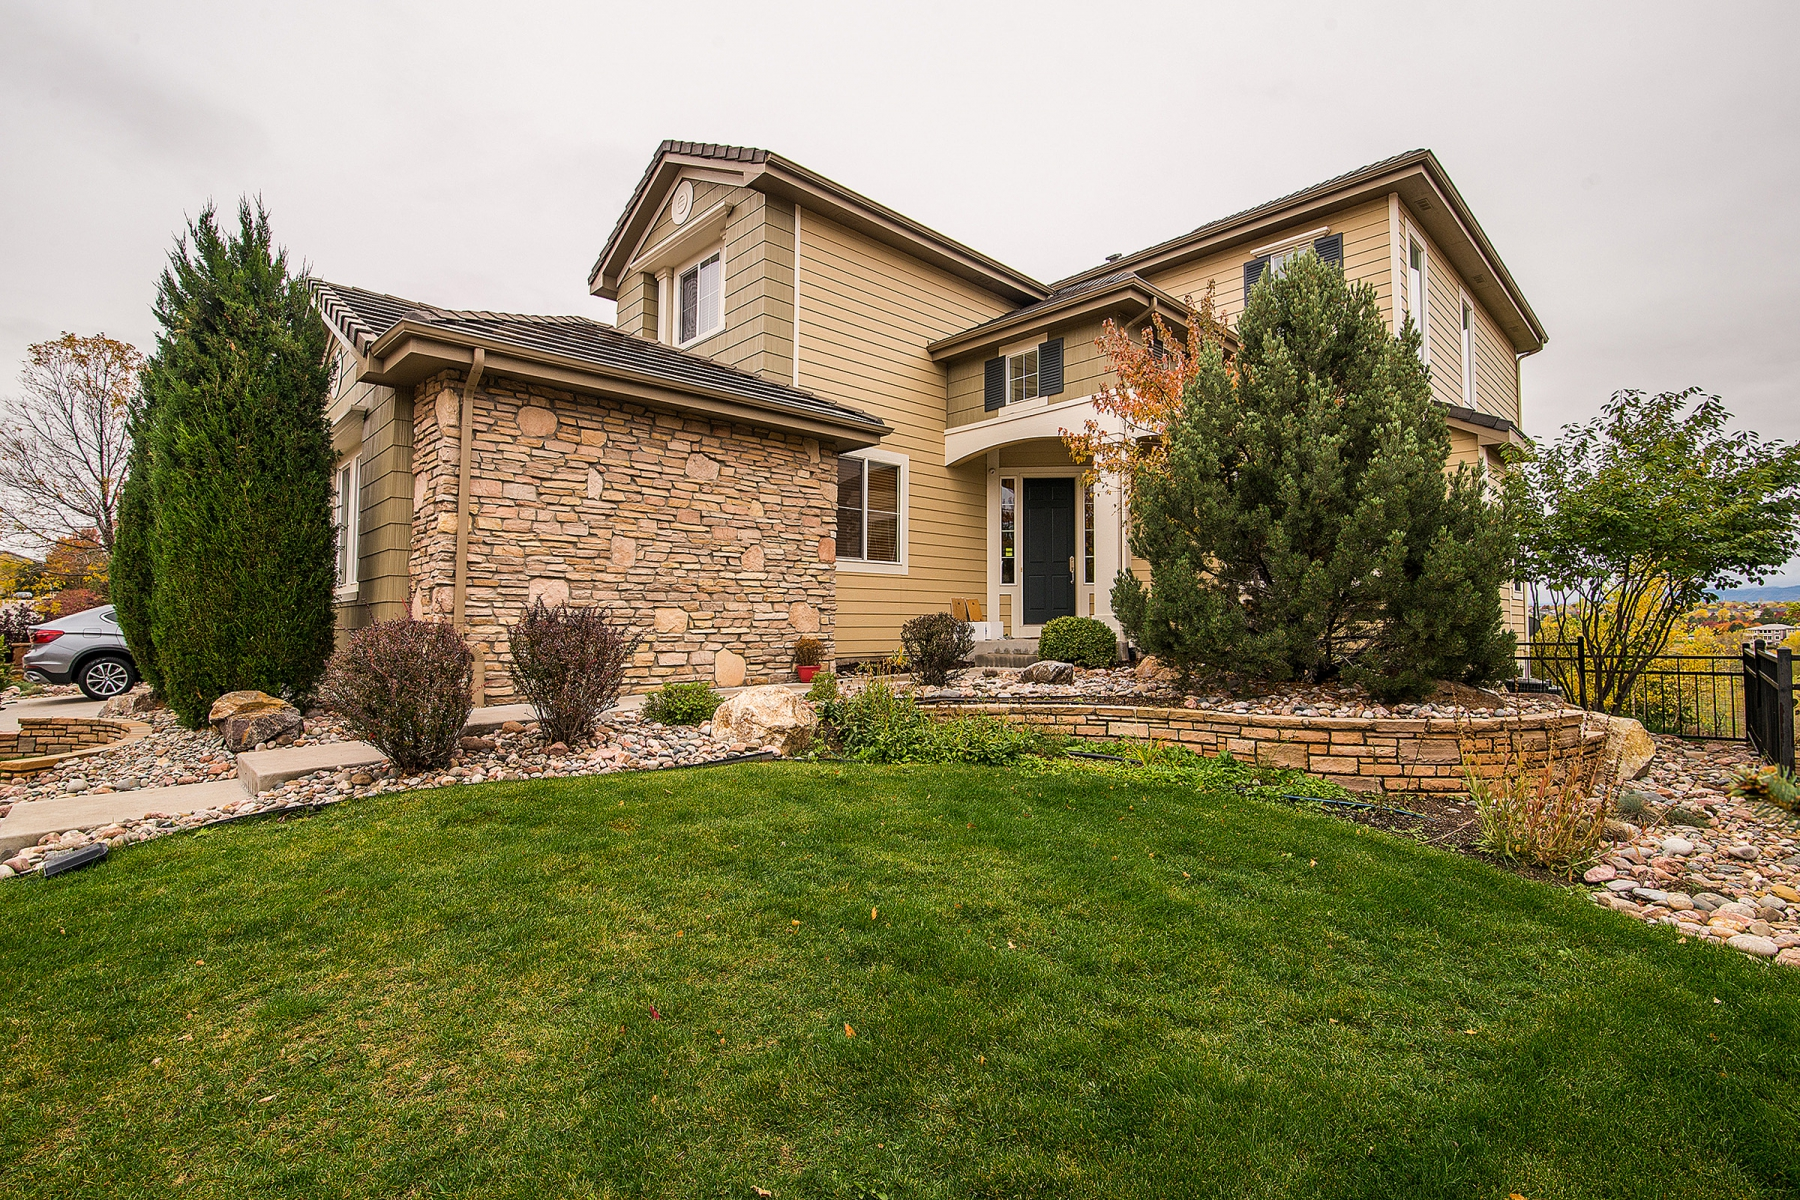 Single Family Home for Active at A remarkable find in Highlands Ranch Golf Club backting to the 12th tee 2832 Rockbridge Dr Highlands Ranch, Colorado 80129 United States